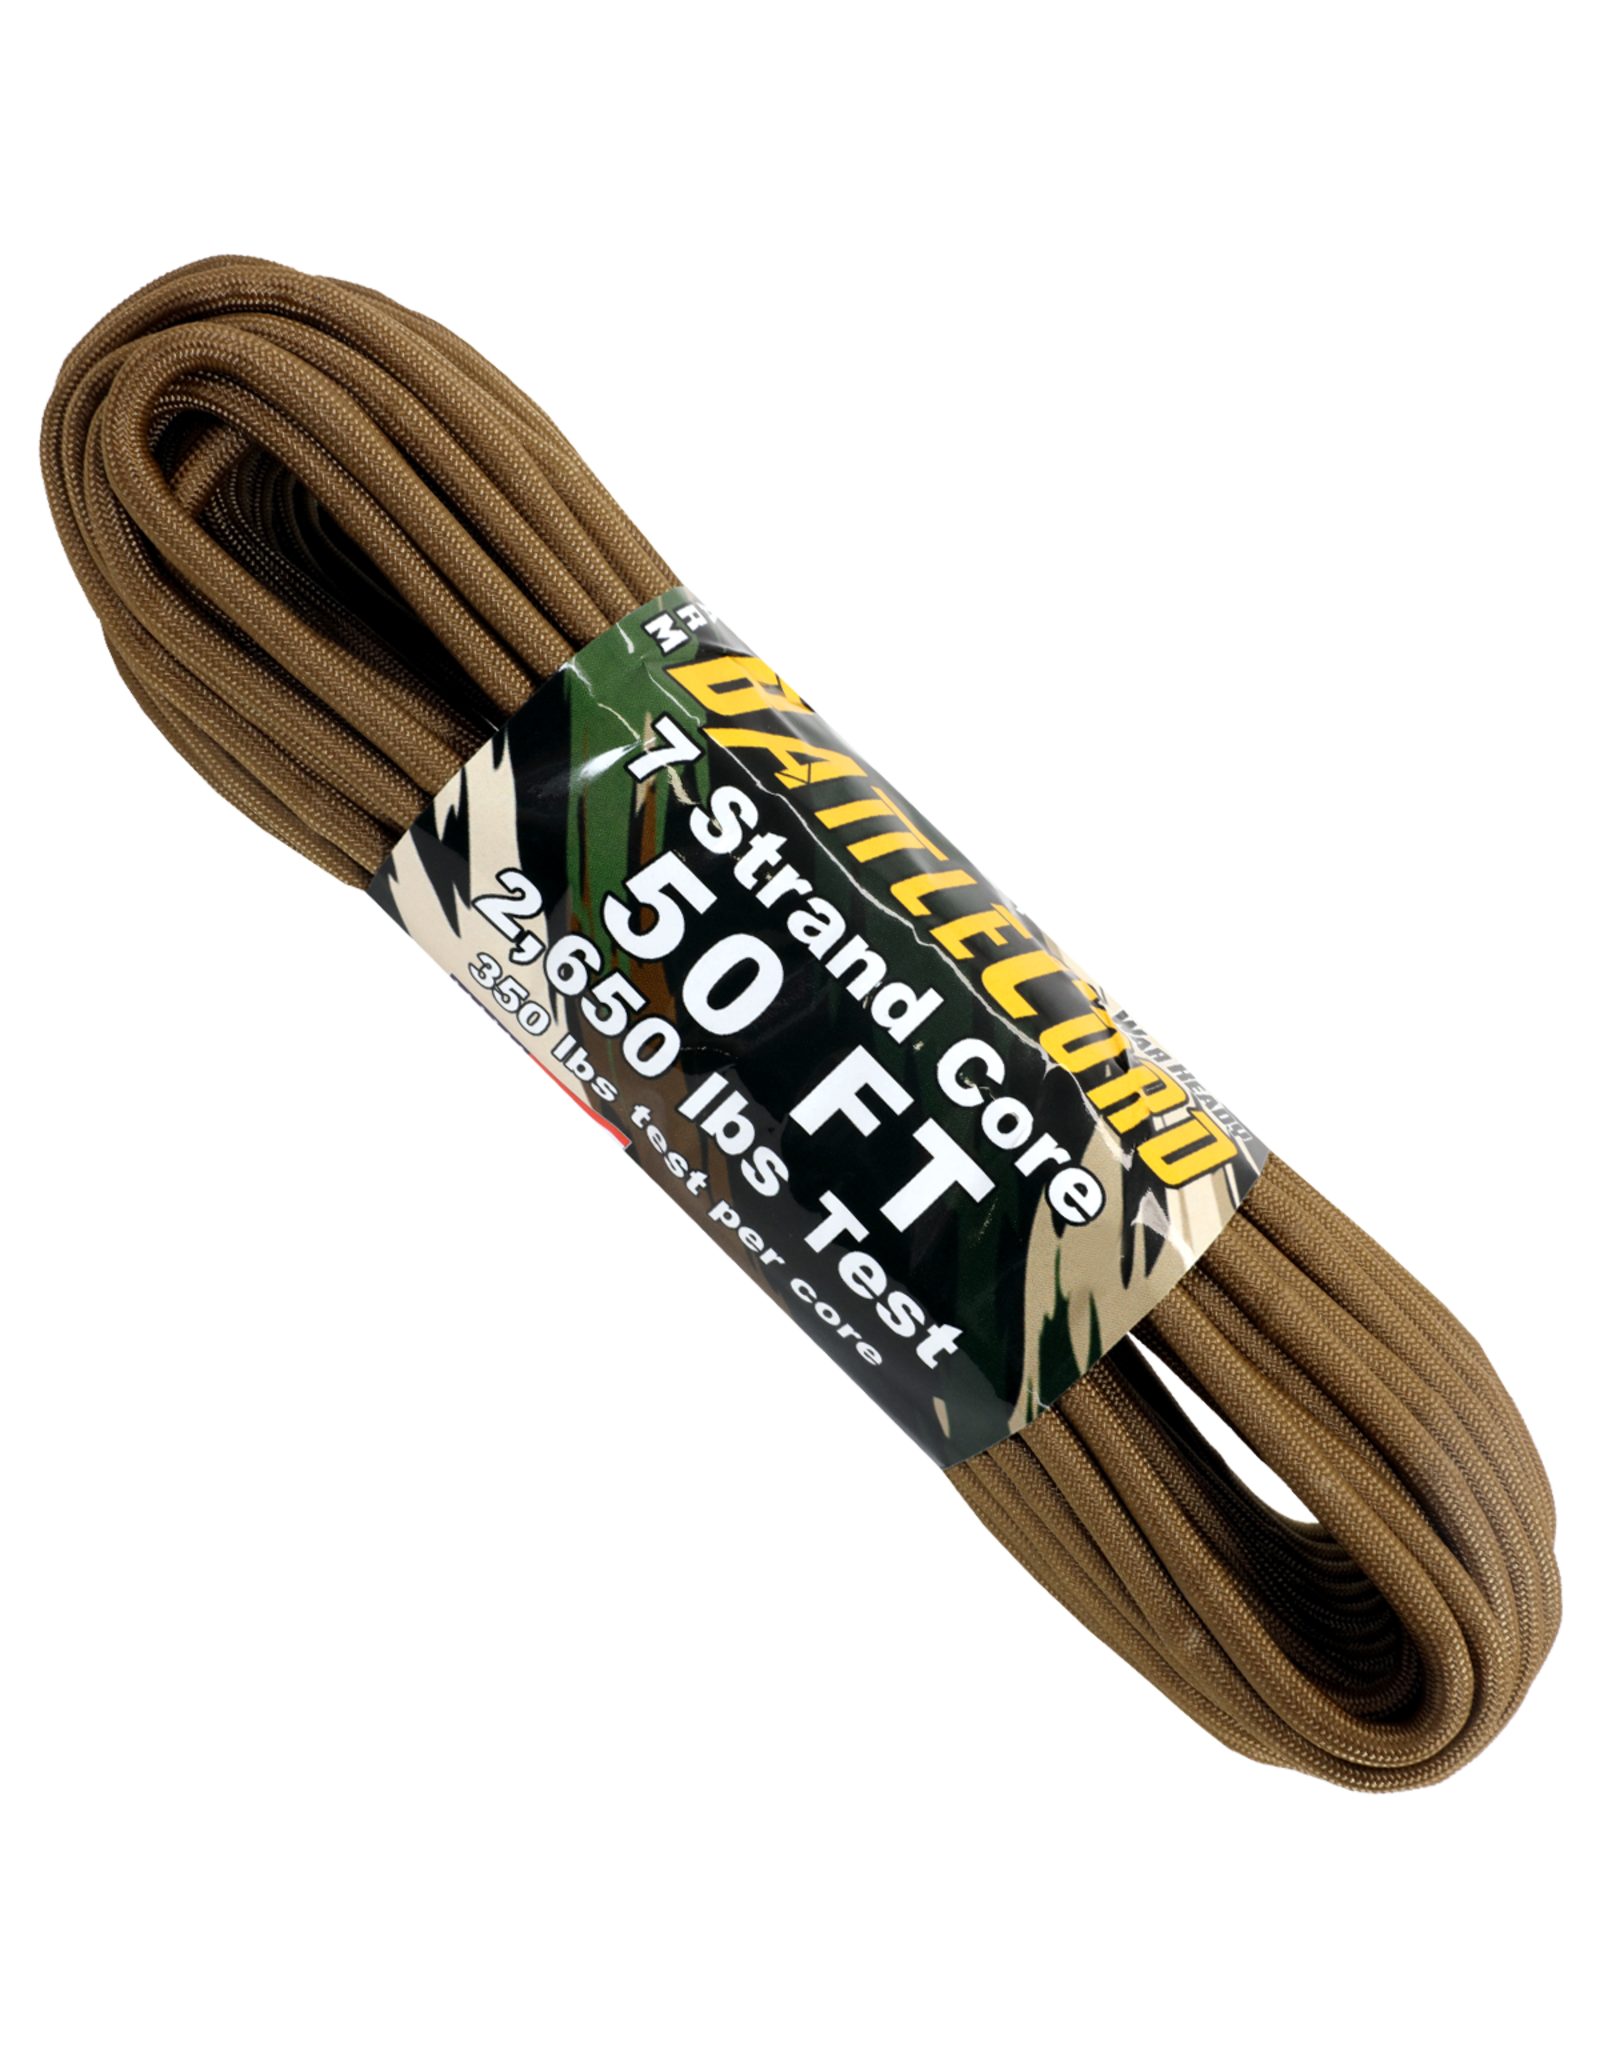 ATWOOD ROPE MFG BATTLECORD 50FT